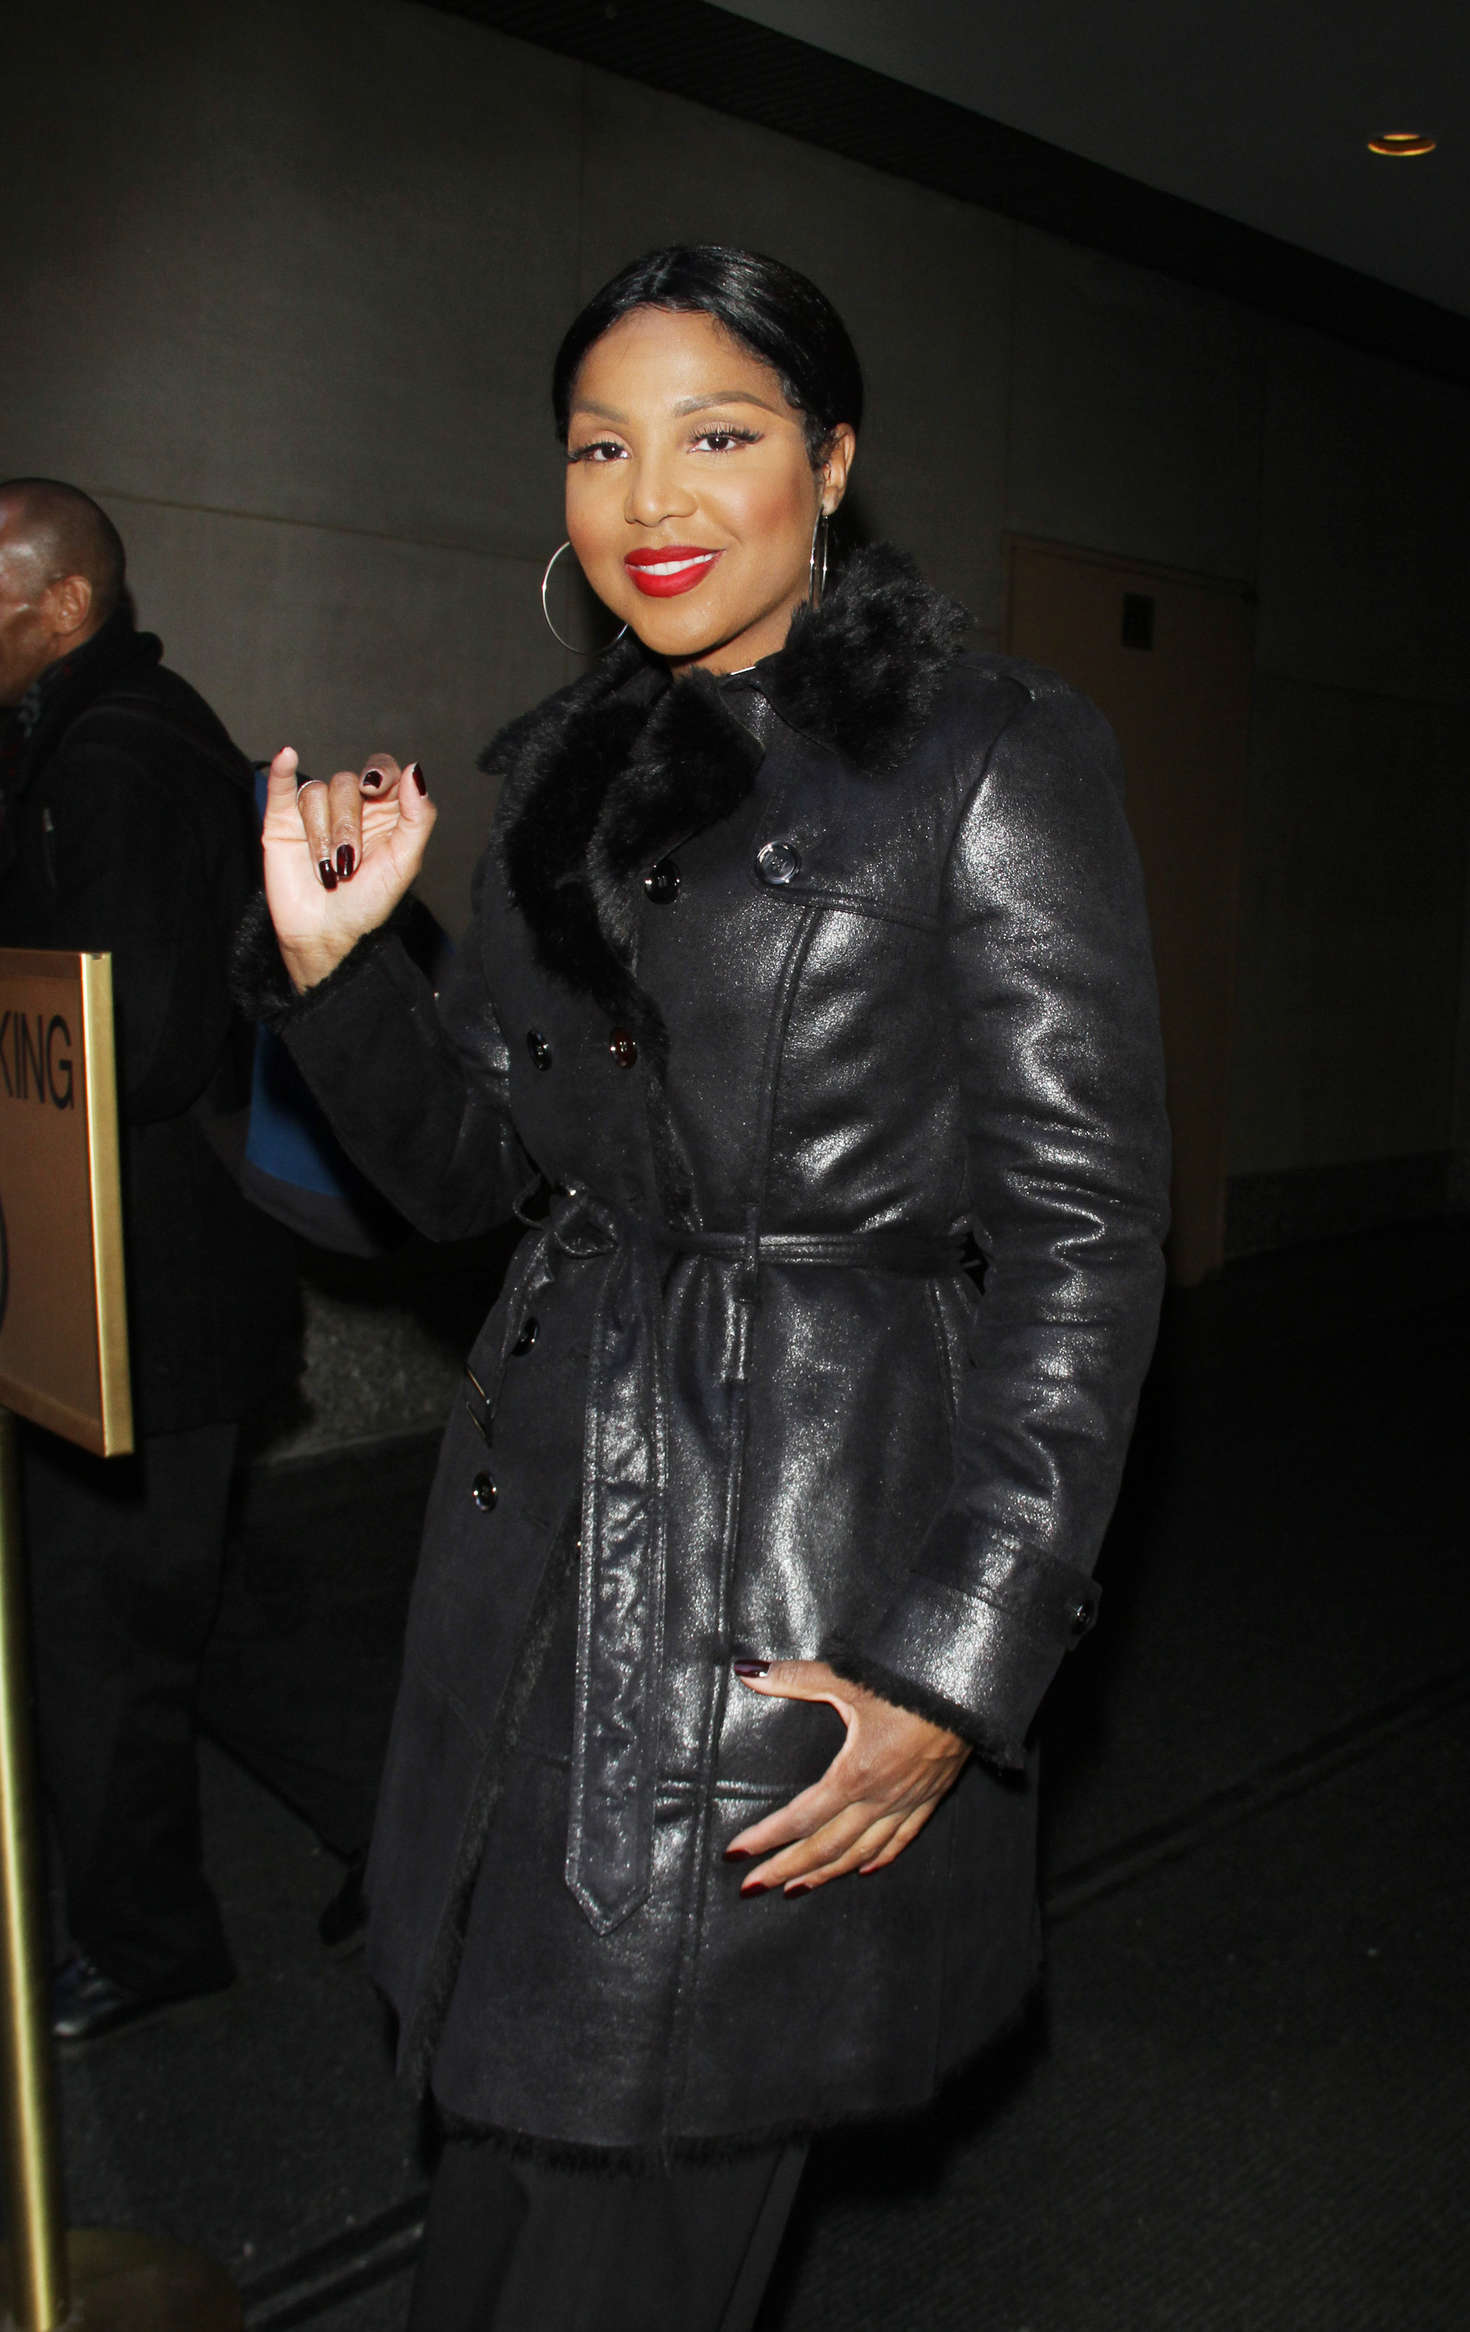 Toni Braxton NBCs Today Show in New York